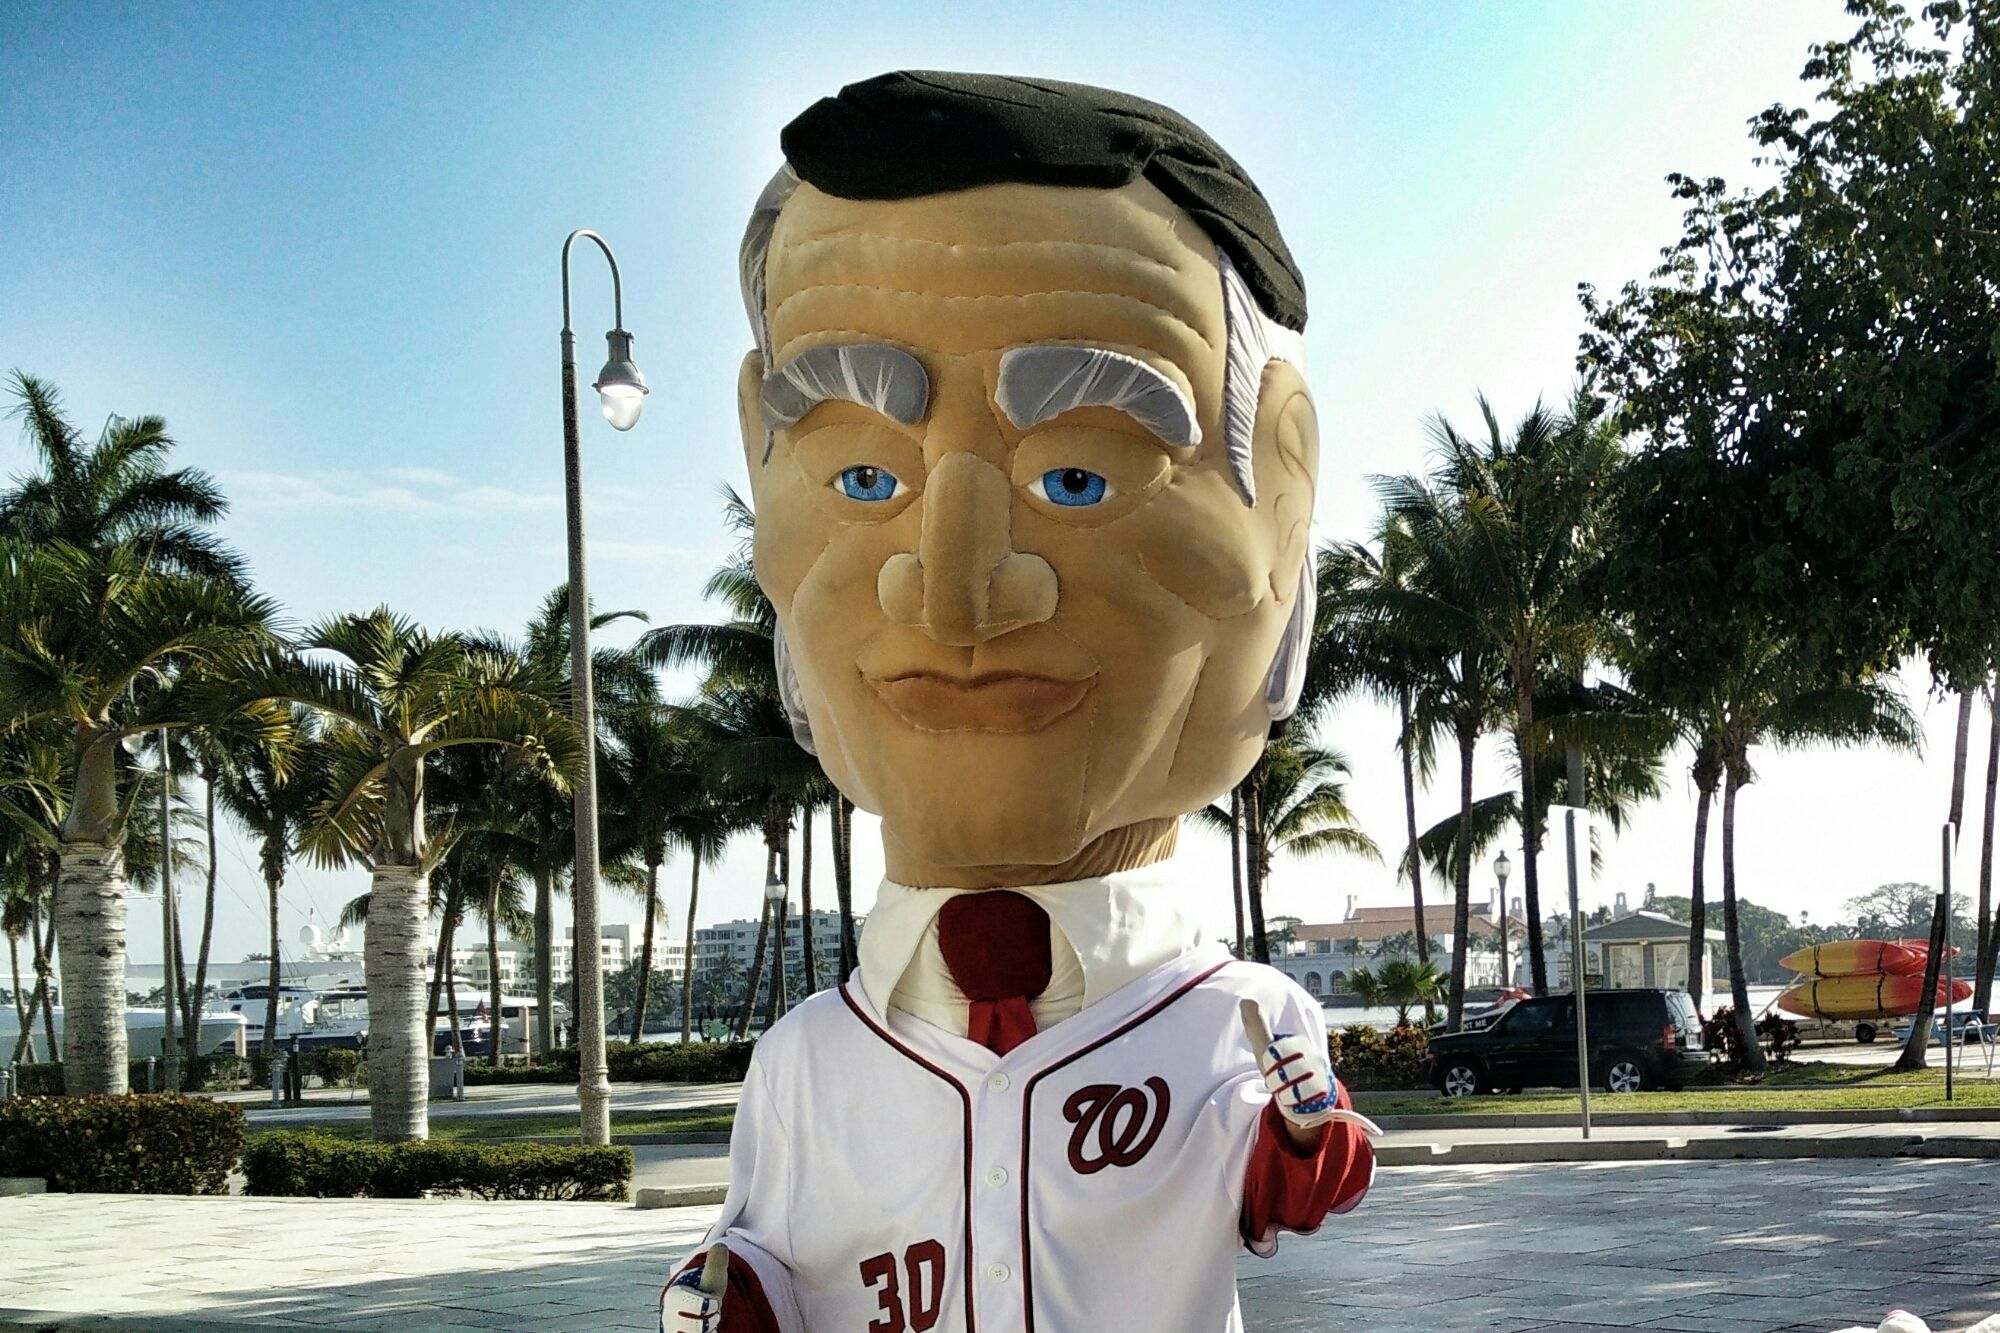 President Coolidge representing the @Nationals on the waterfront #ilovewpb